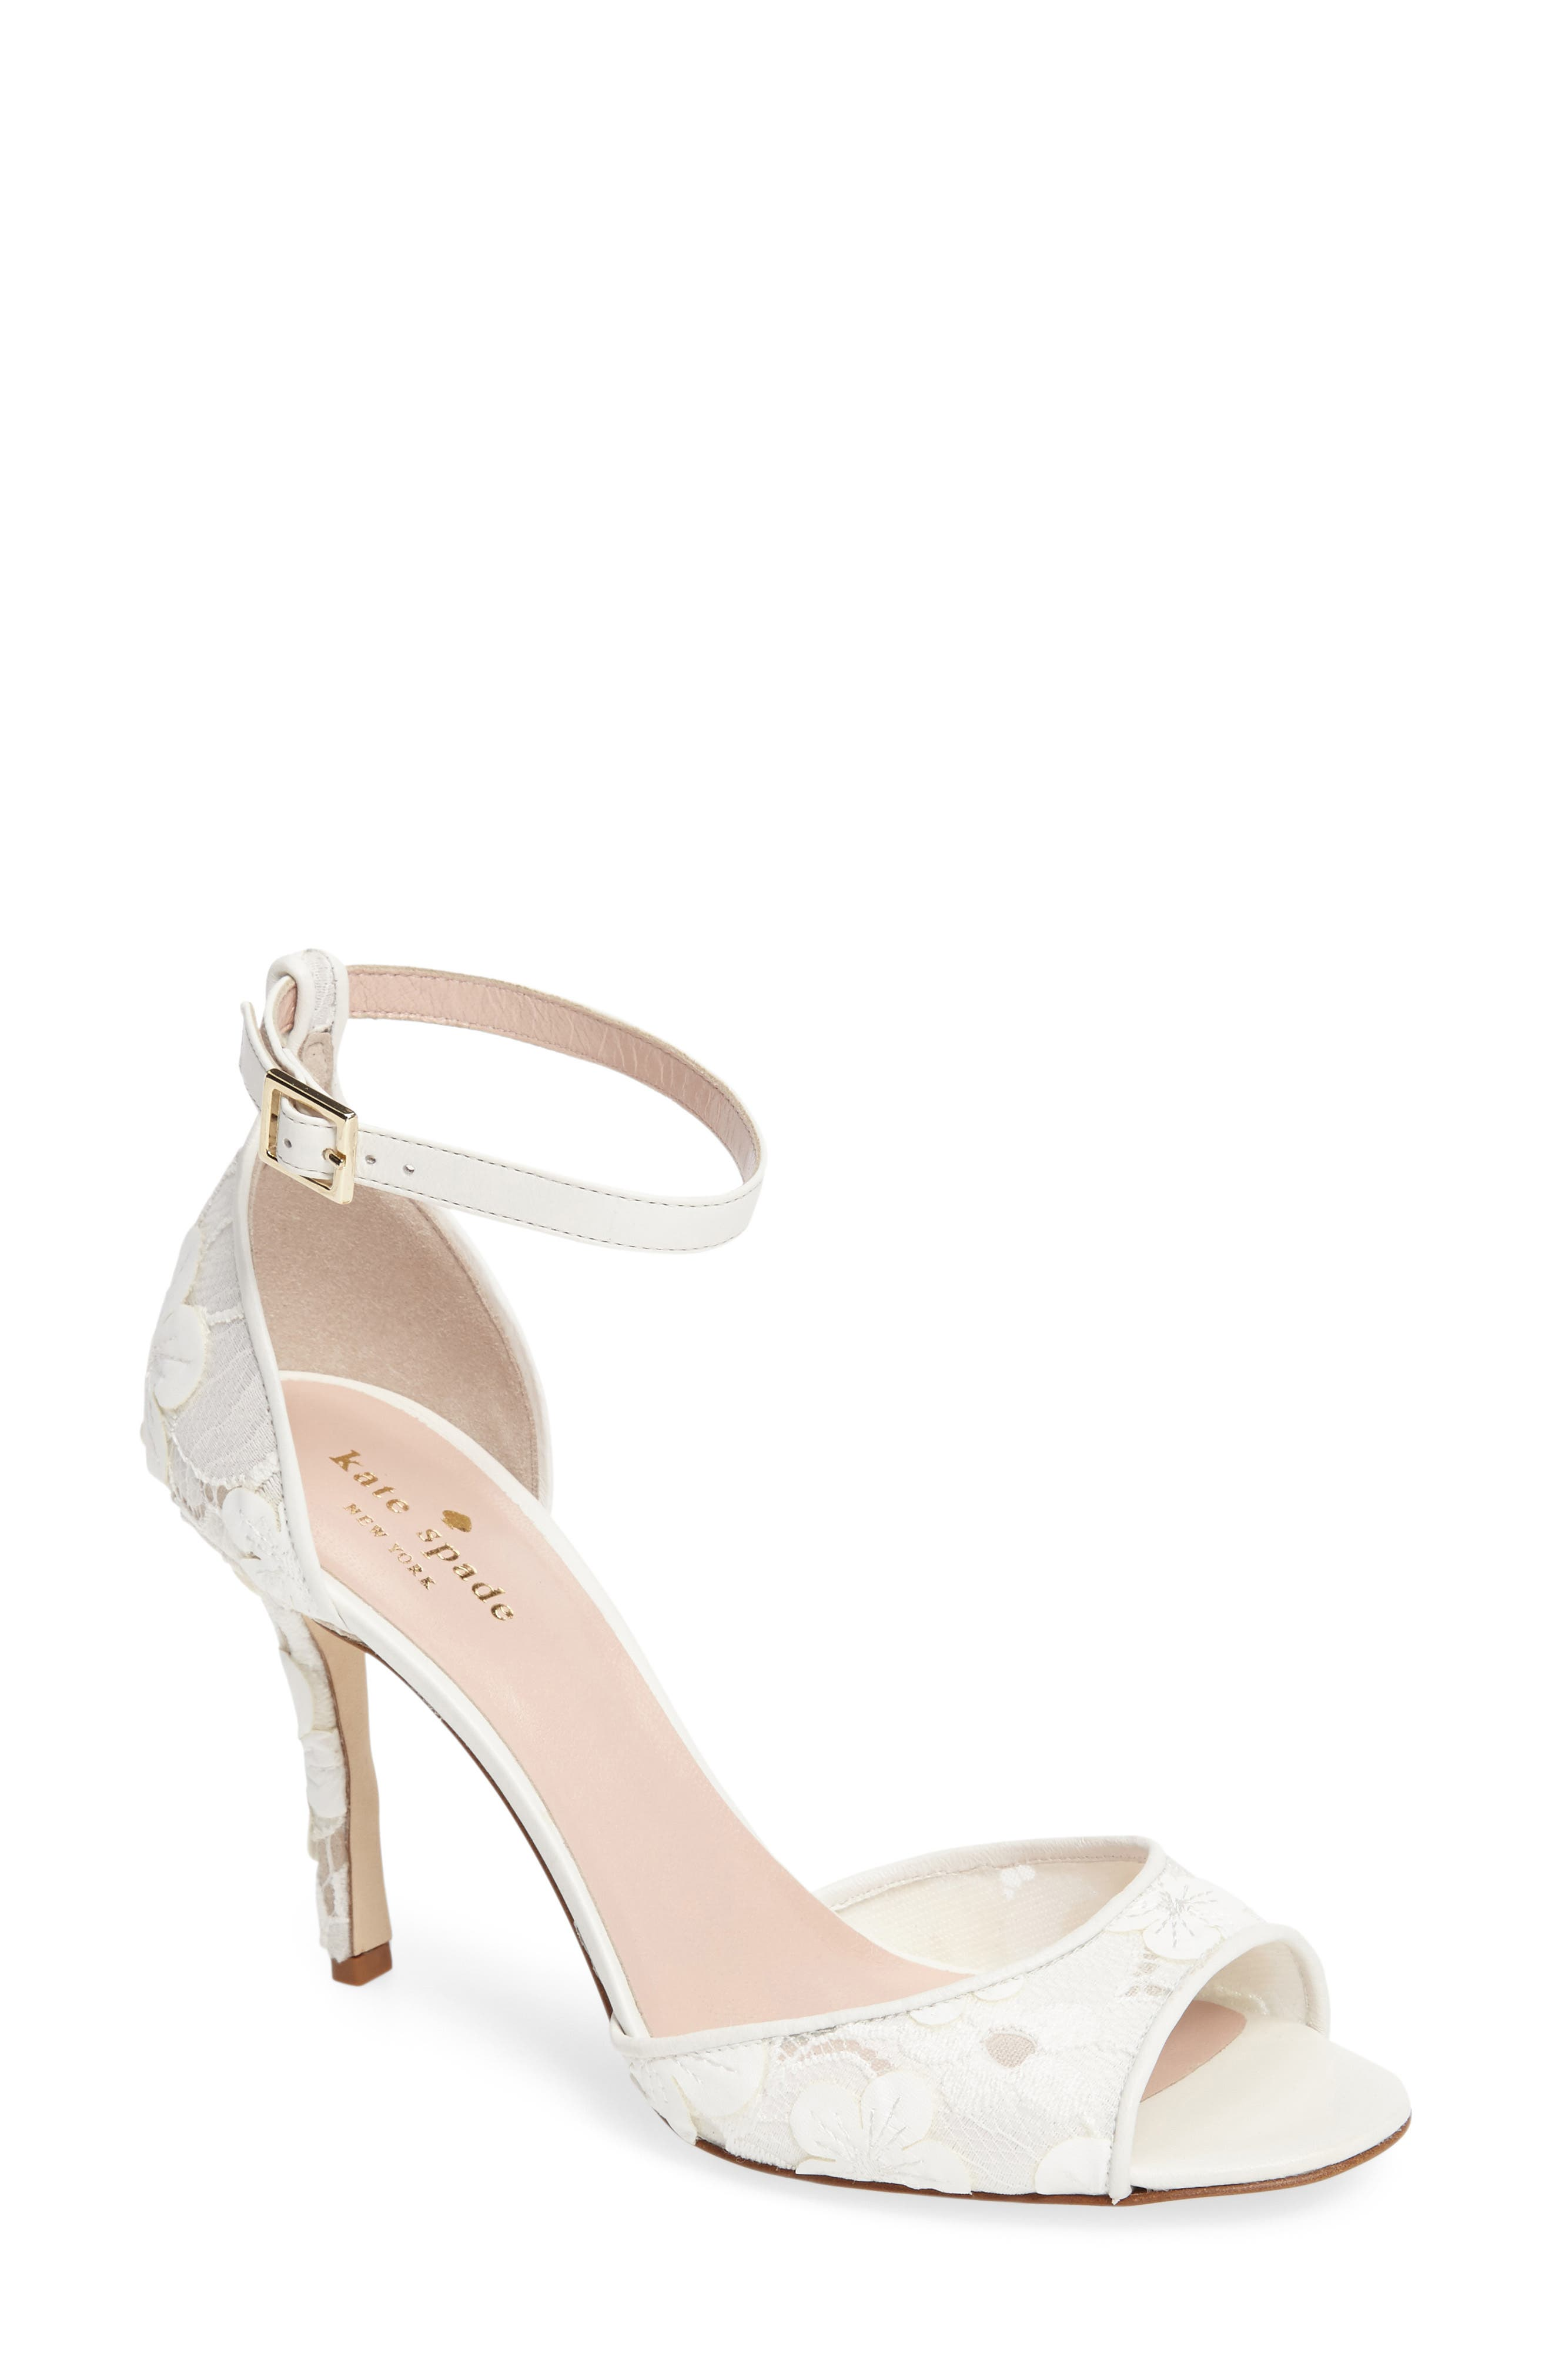 Alternate Image 1 Selected - kate spade new york ideline floral lace sandal (Women)